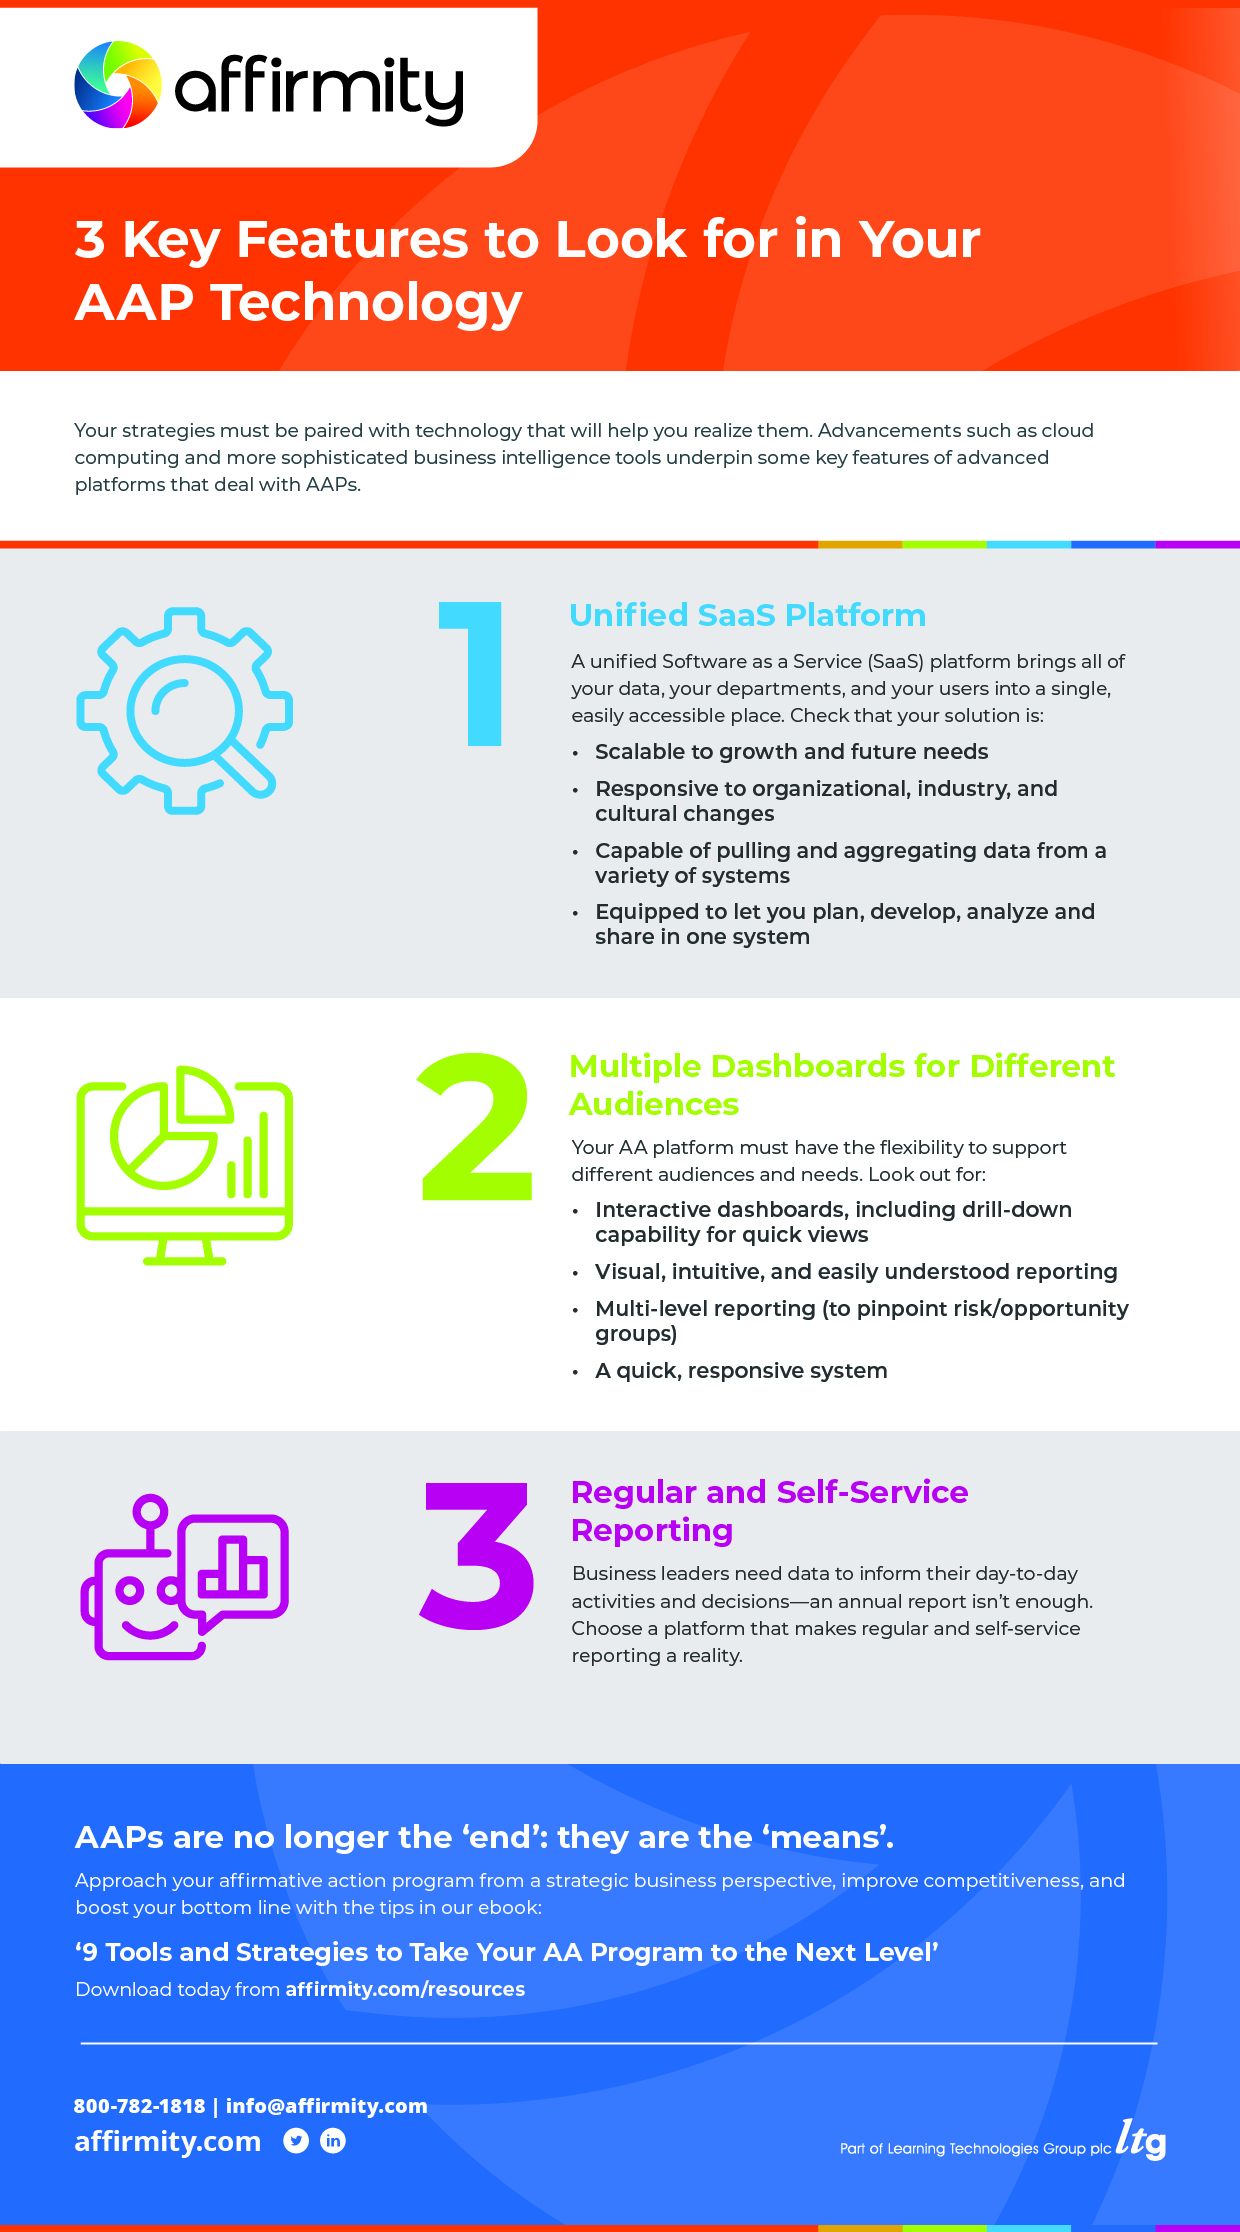 3 Key Features to Look for in Your AAP Technology infographic